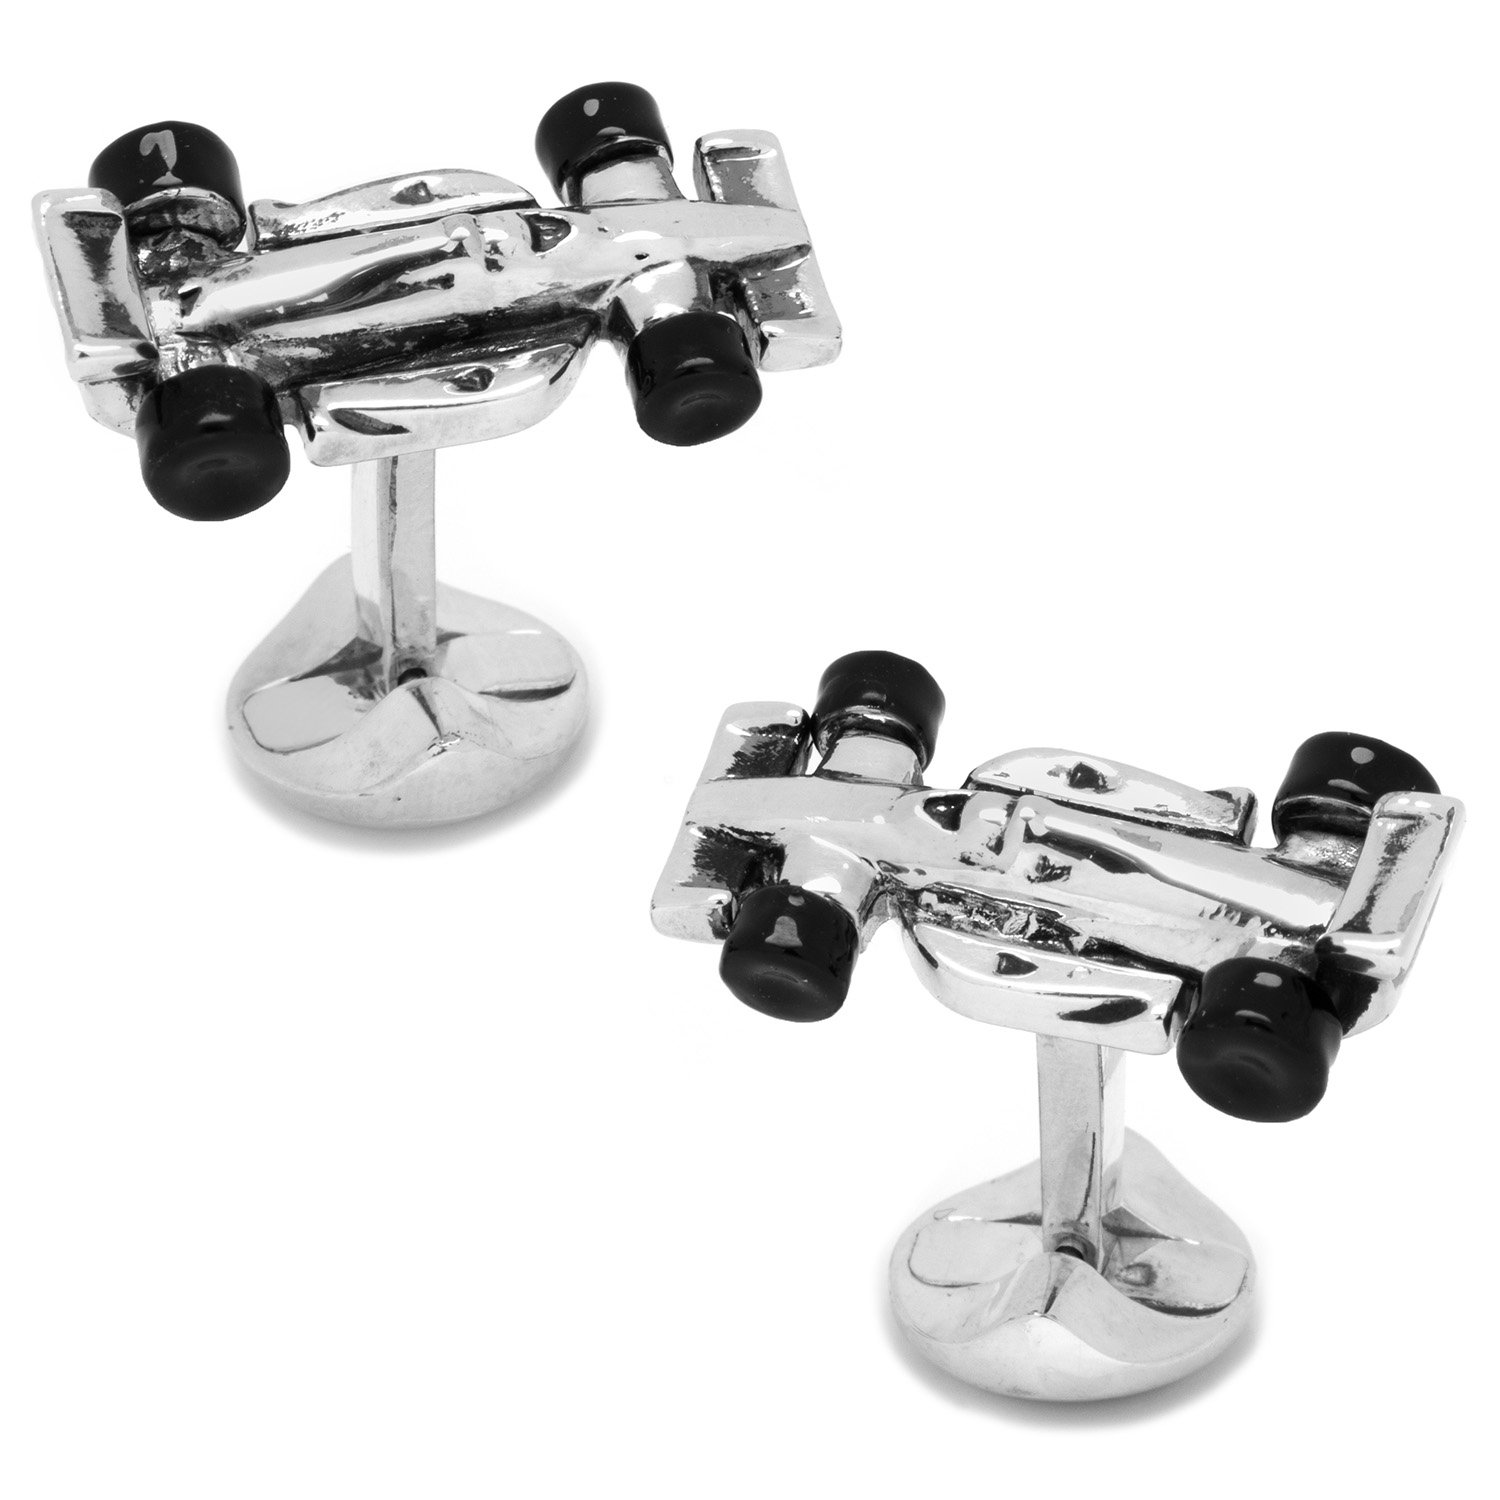 Ox and Bull Mens Racecar Cufflinks by Ox and Bull